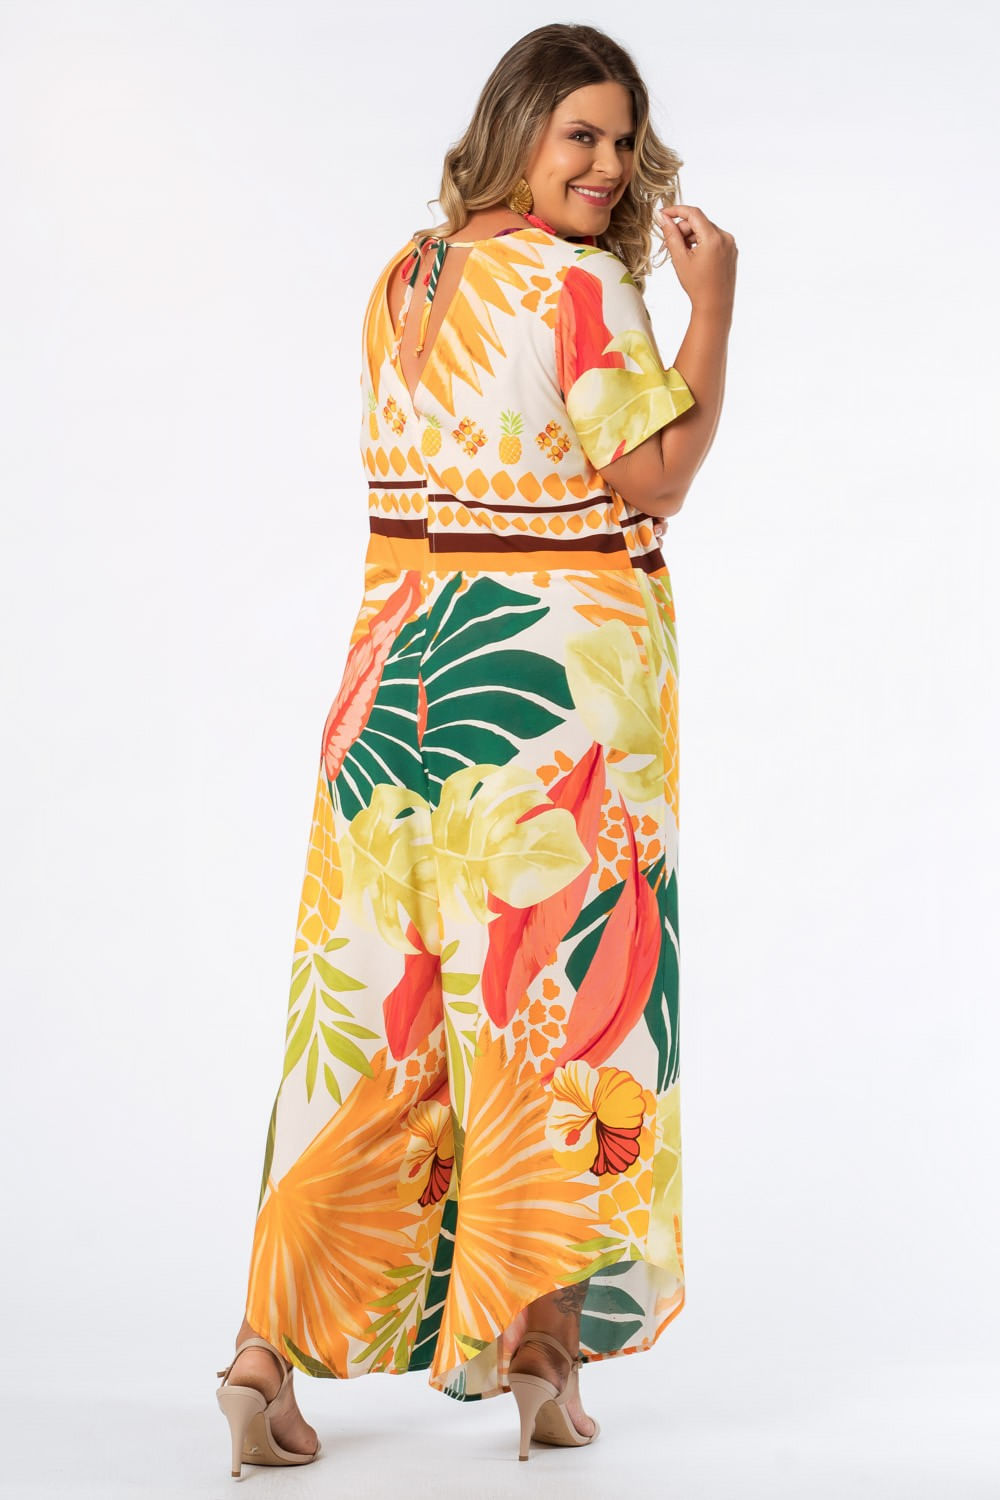 macacao_tropicaxi_plus_size_off_white_22228_2_20201208143903